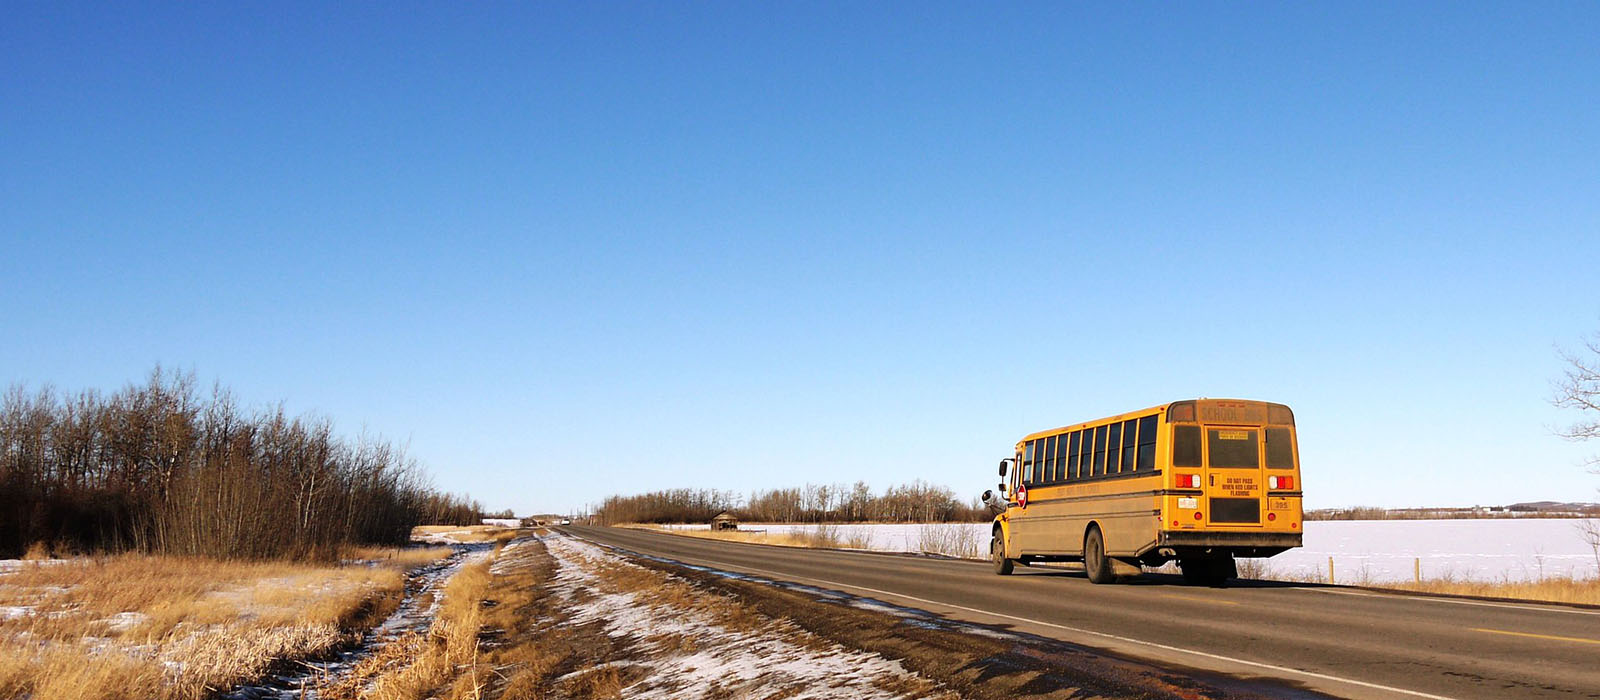 Paved Road with School Bus